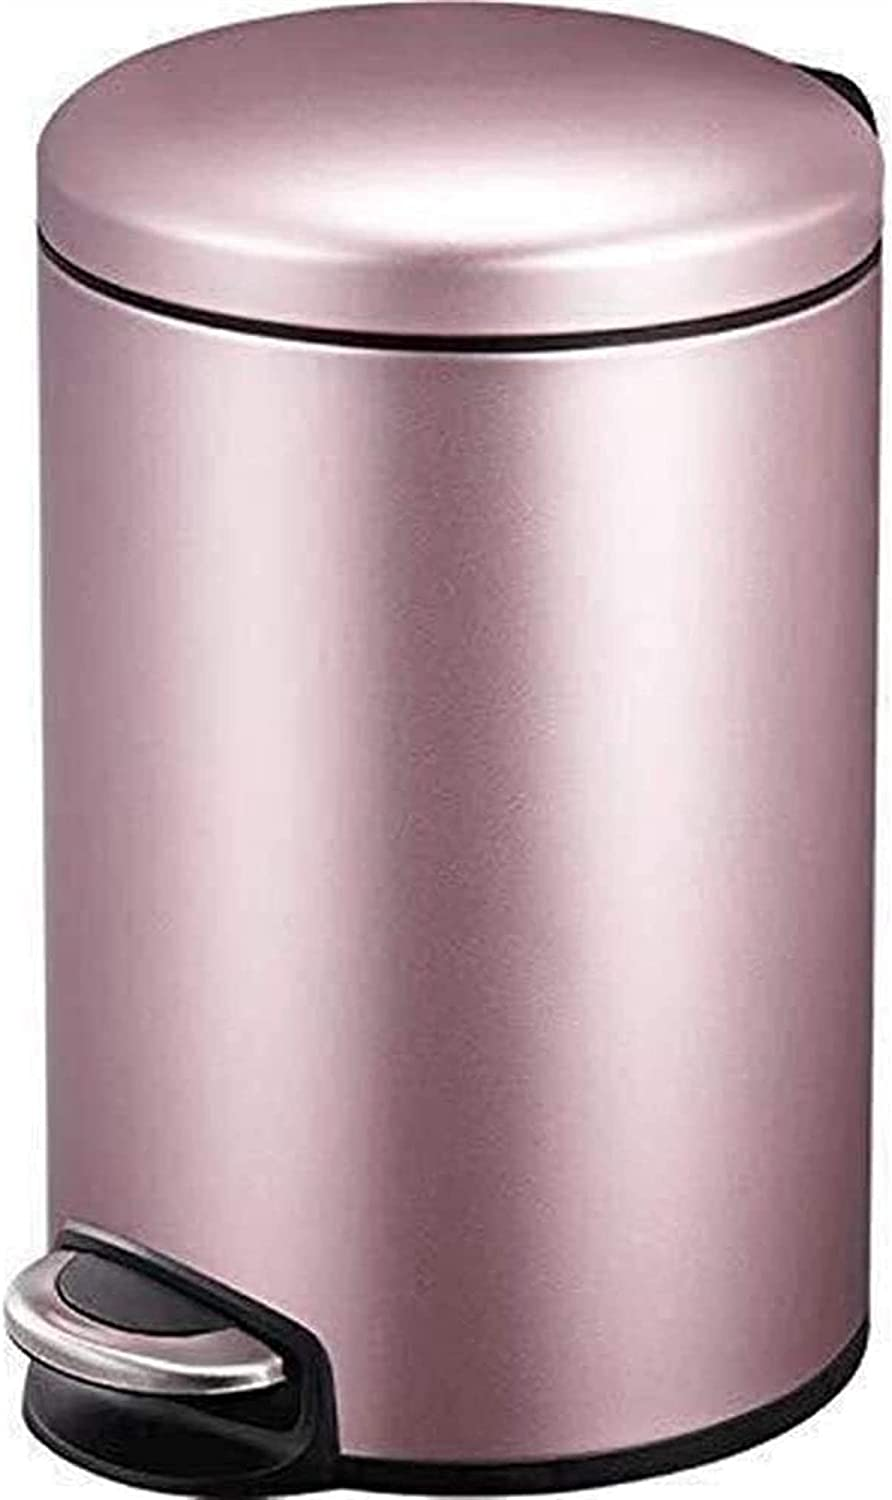 Trash Cans Home wholesale Fashion Award and Environmental Can Protection Garbage